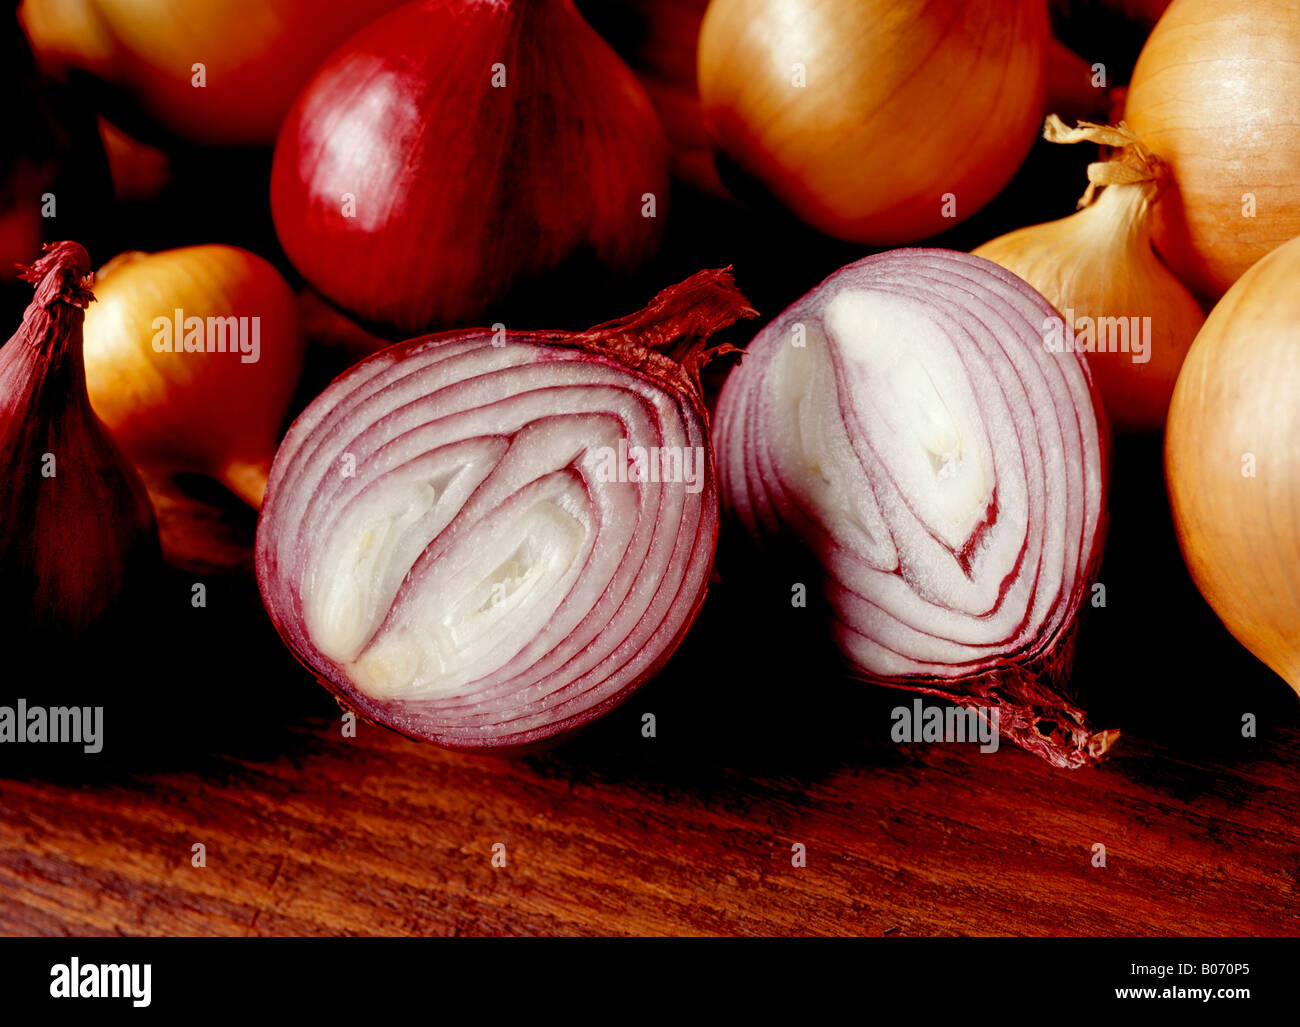 CUT RED ONION SURROUNDED BY WHOLE RED AND WHITE ONIONS ON A WOODEN SURFACE - Stock Image